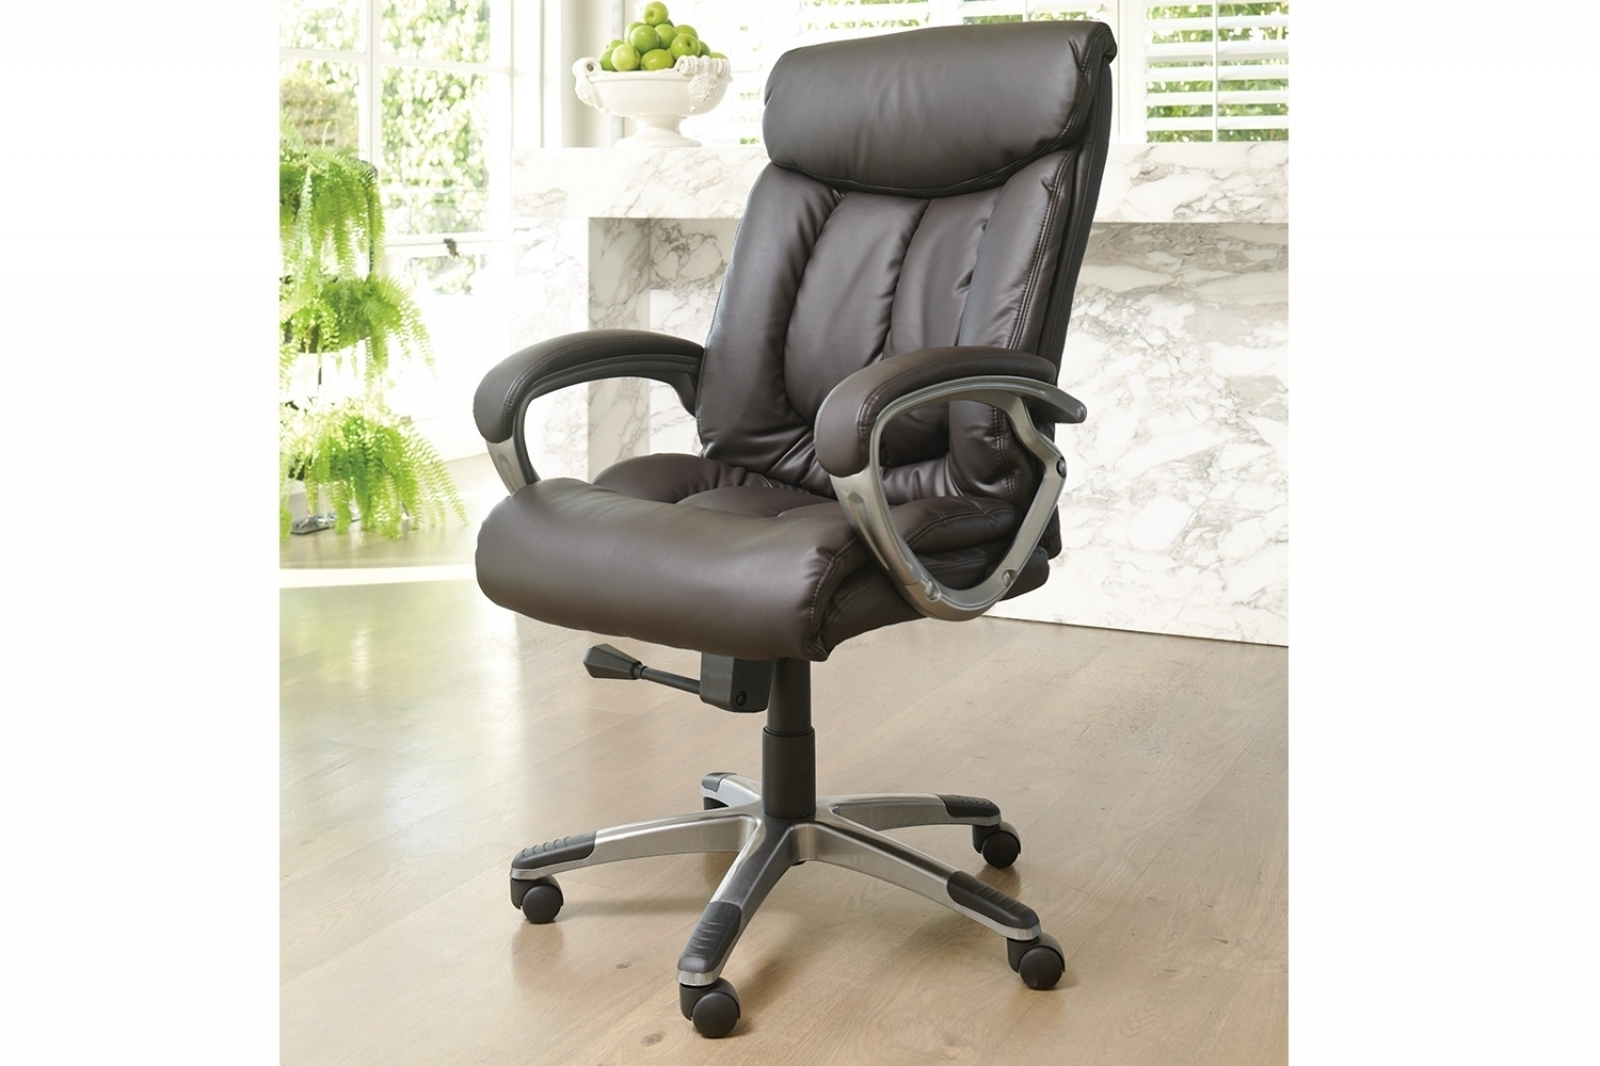 Harvey Norman Executive Office Chairs For Latest Dining Office Chairs Nz – Home Design – Game Hay (View 4 of 20)